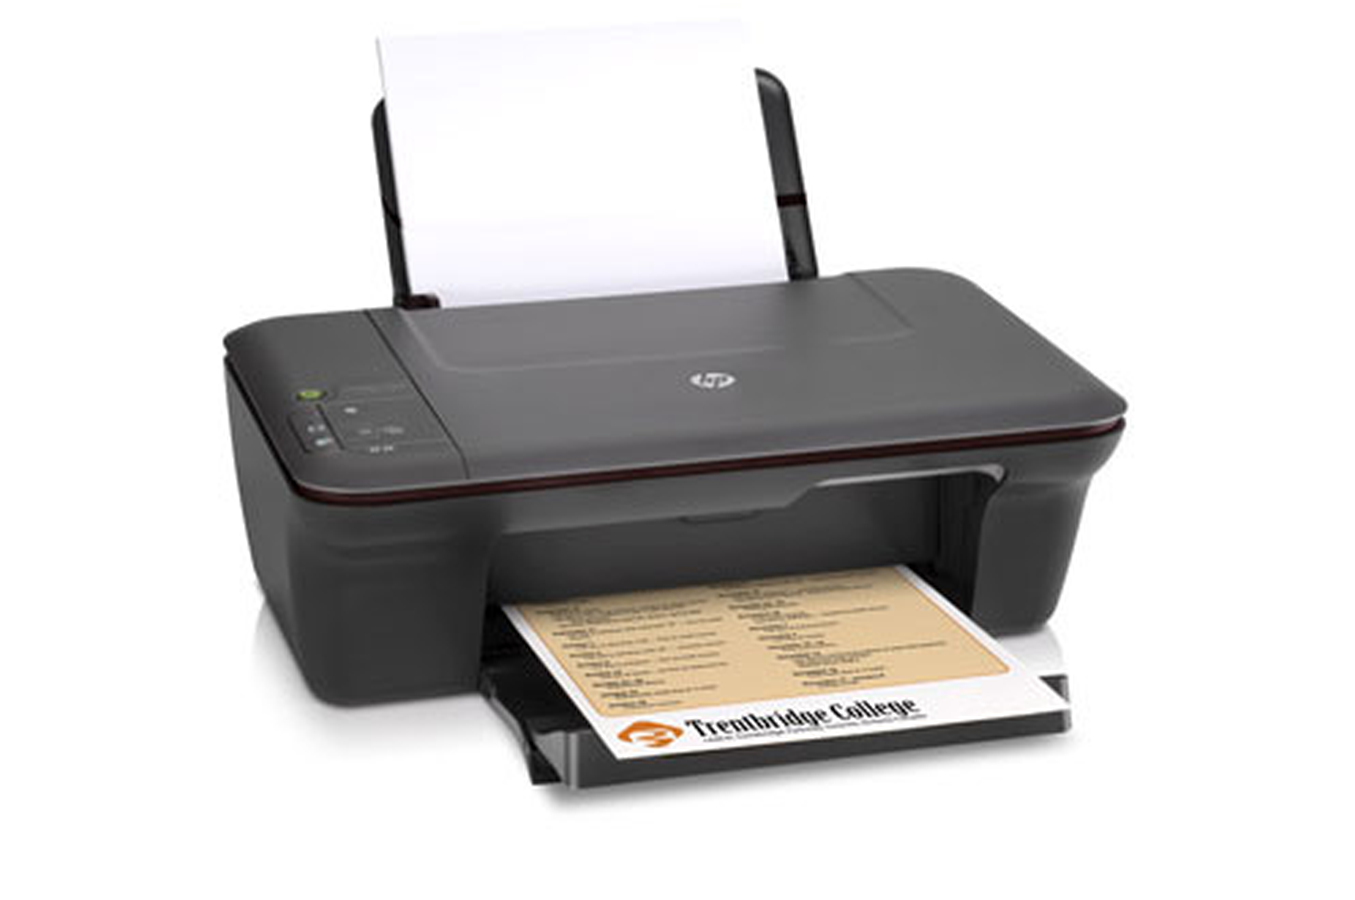 scanner un document avec imprimante hp deskjet 1050a. Black Bedroom Furniture Sets. Home Design Ideas